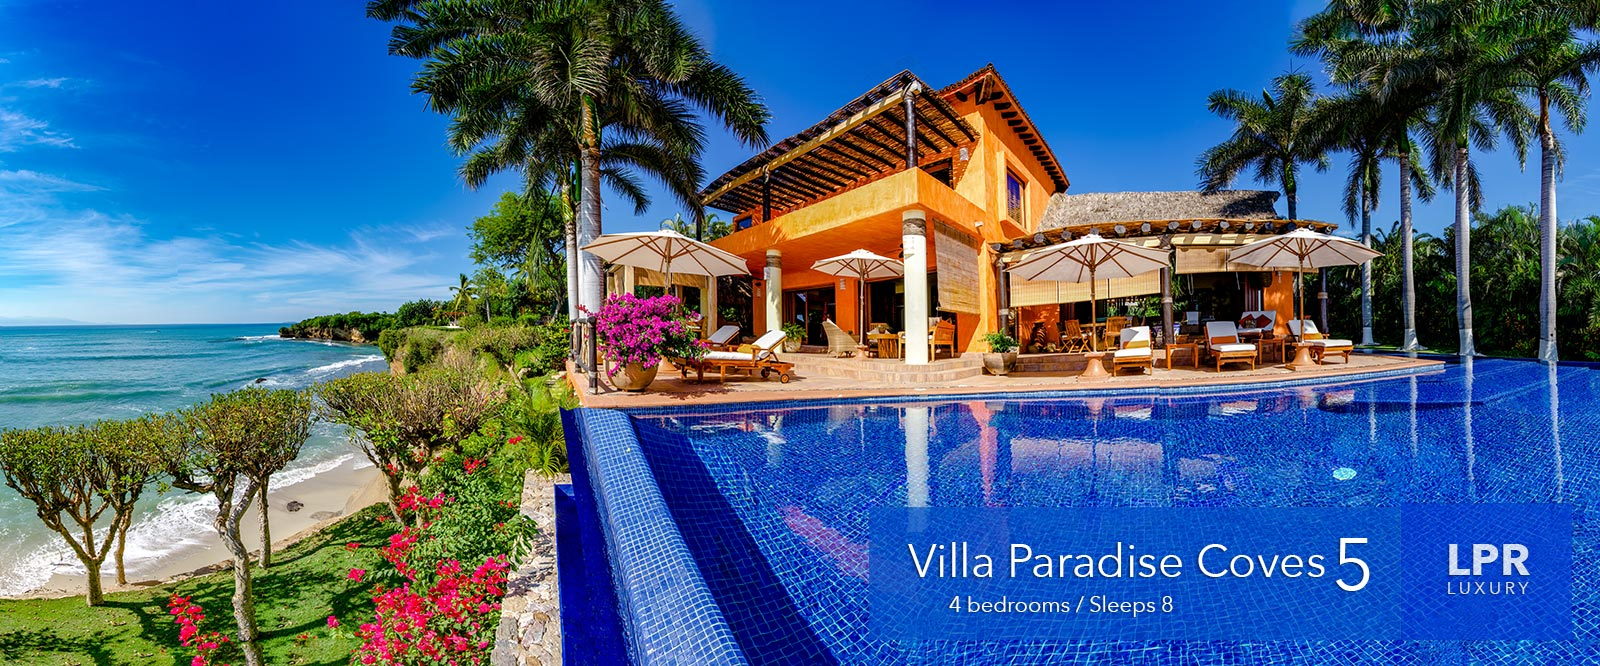 Villa Paradise Coves 5 - Luxury real estate in the gated community of Paradise Coves / Pontoquito , Punta de Mita, Riviera Nayarit, Mexico